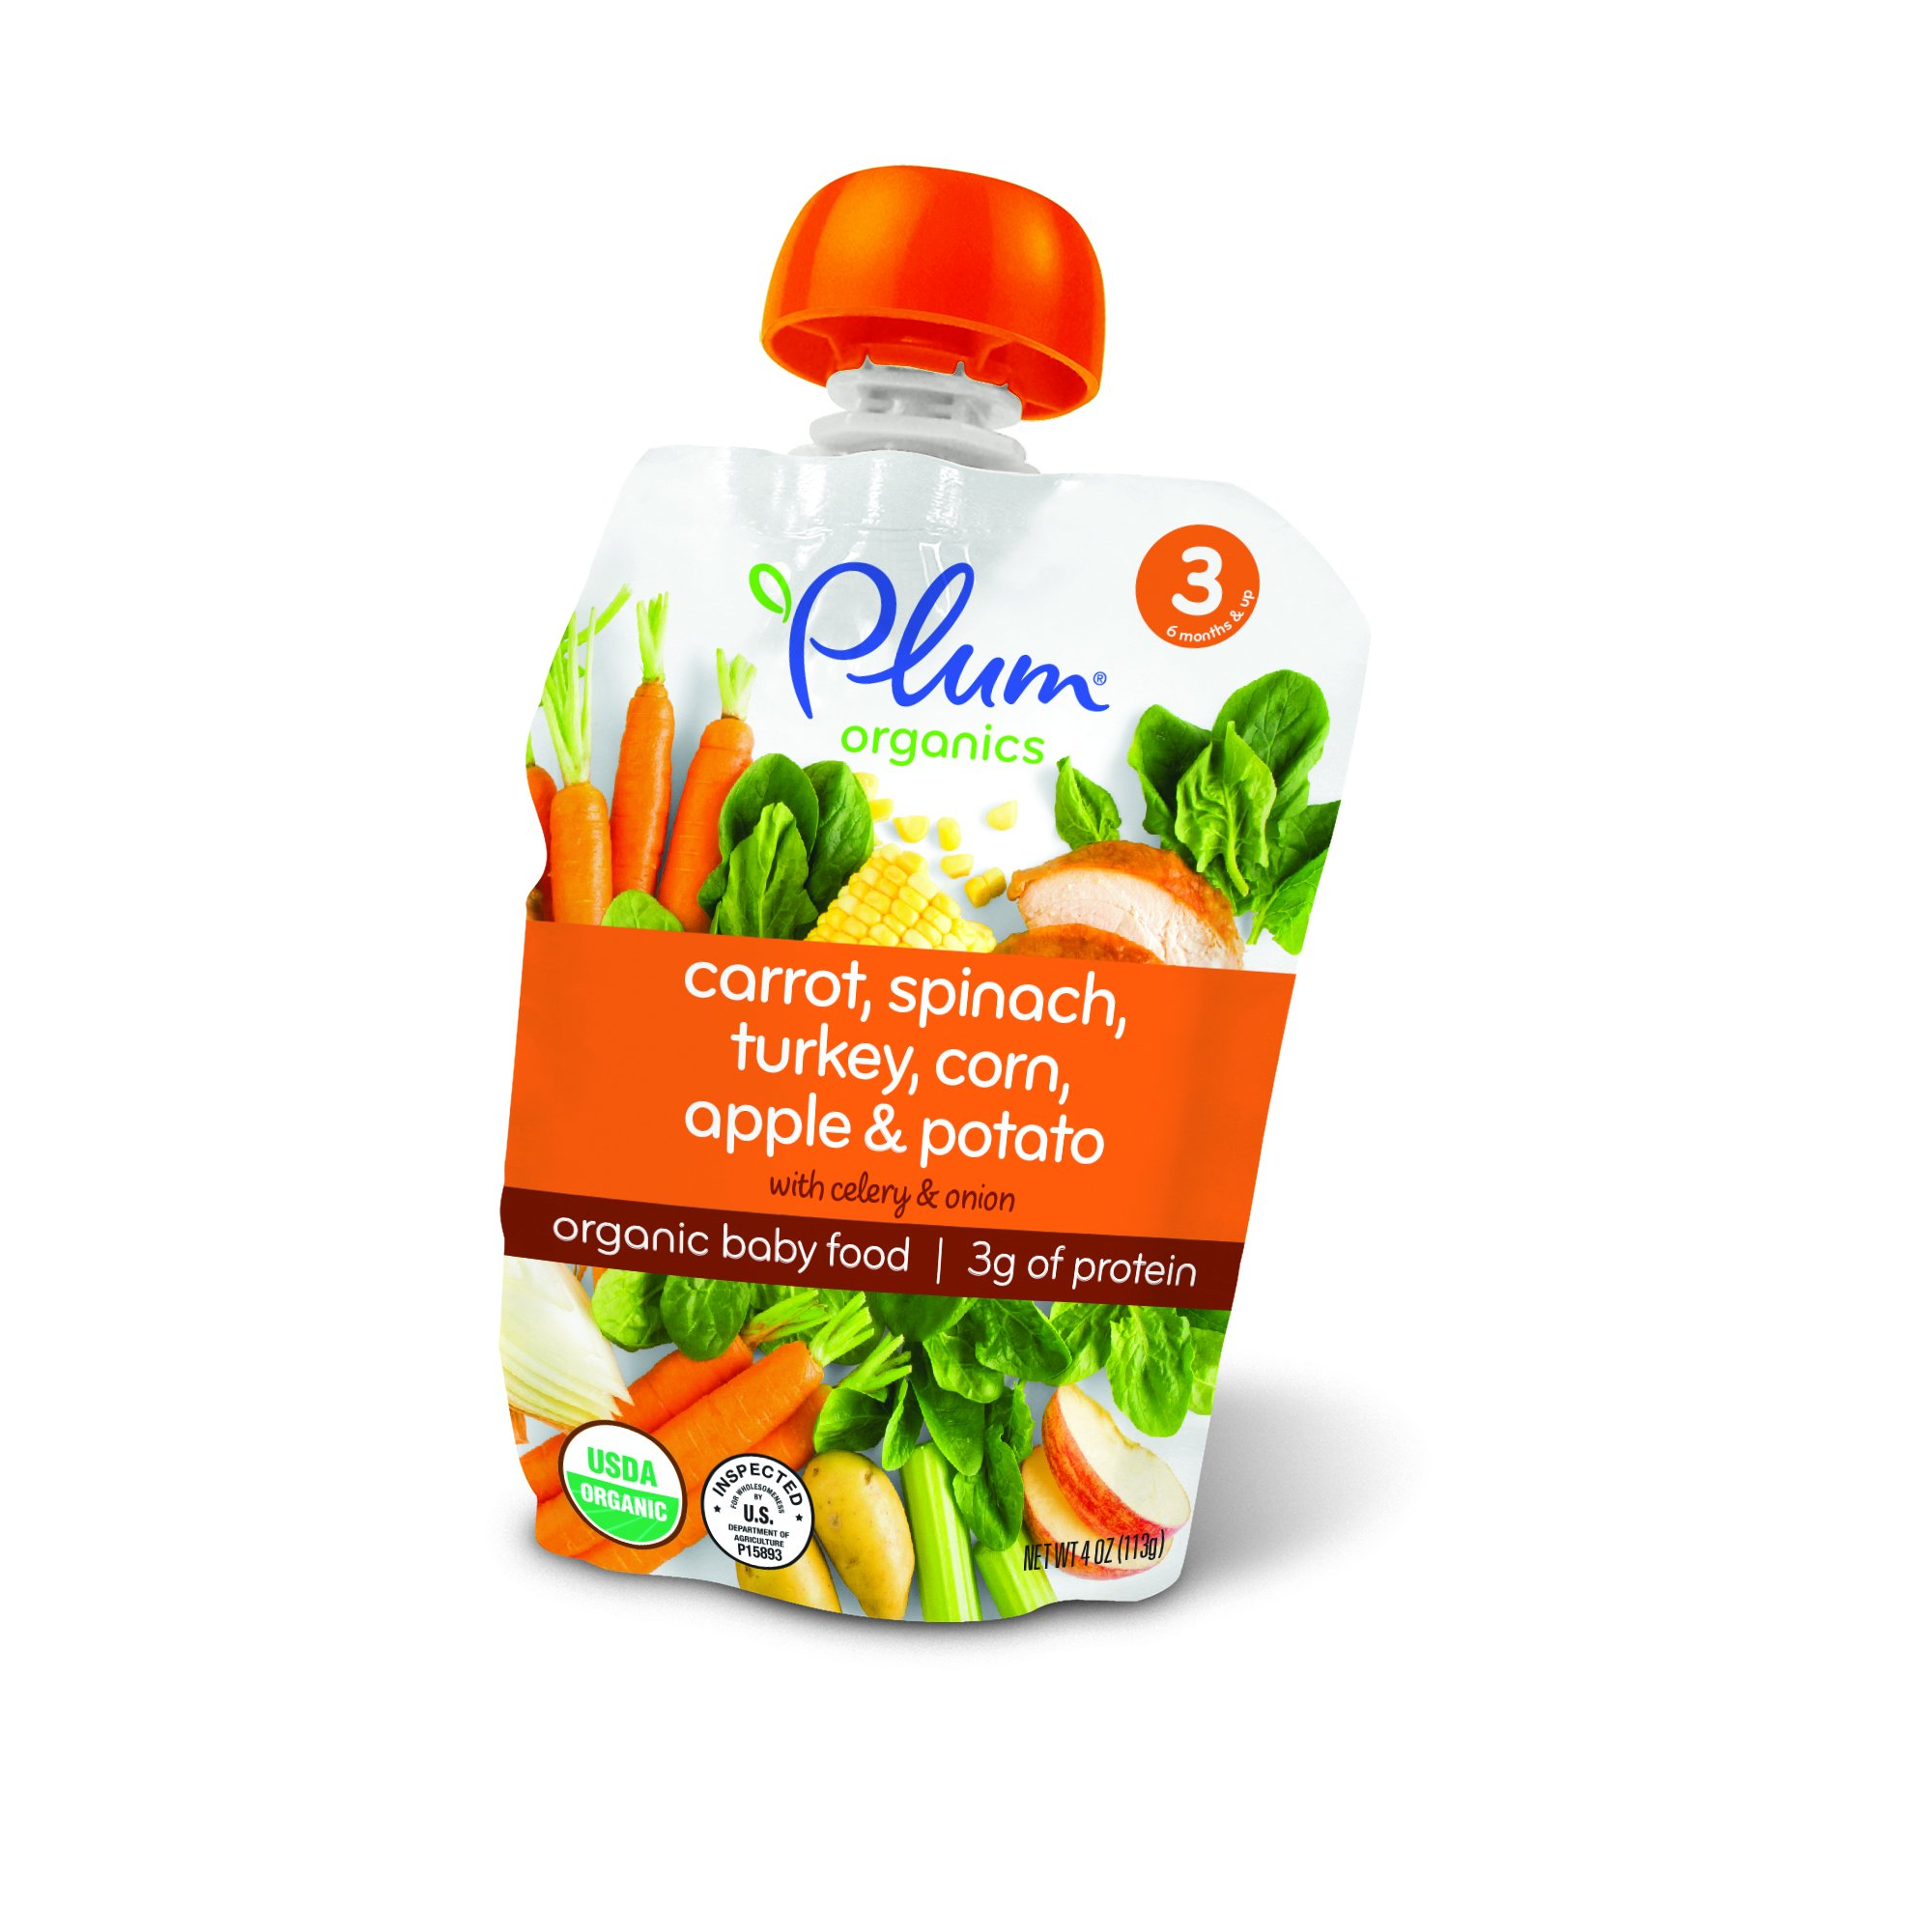 Plum Organics Stage 3, Organic Baby Food, Carrot, Spinach, Turkey, Corn, Apple and Potato, 4 ounce pouches (Pack of 12).